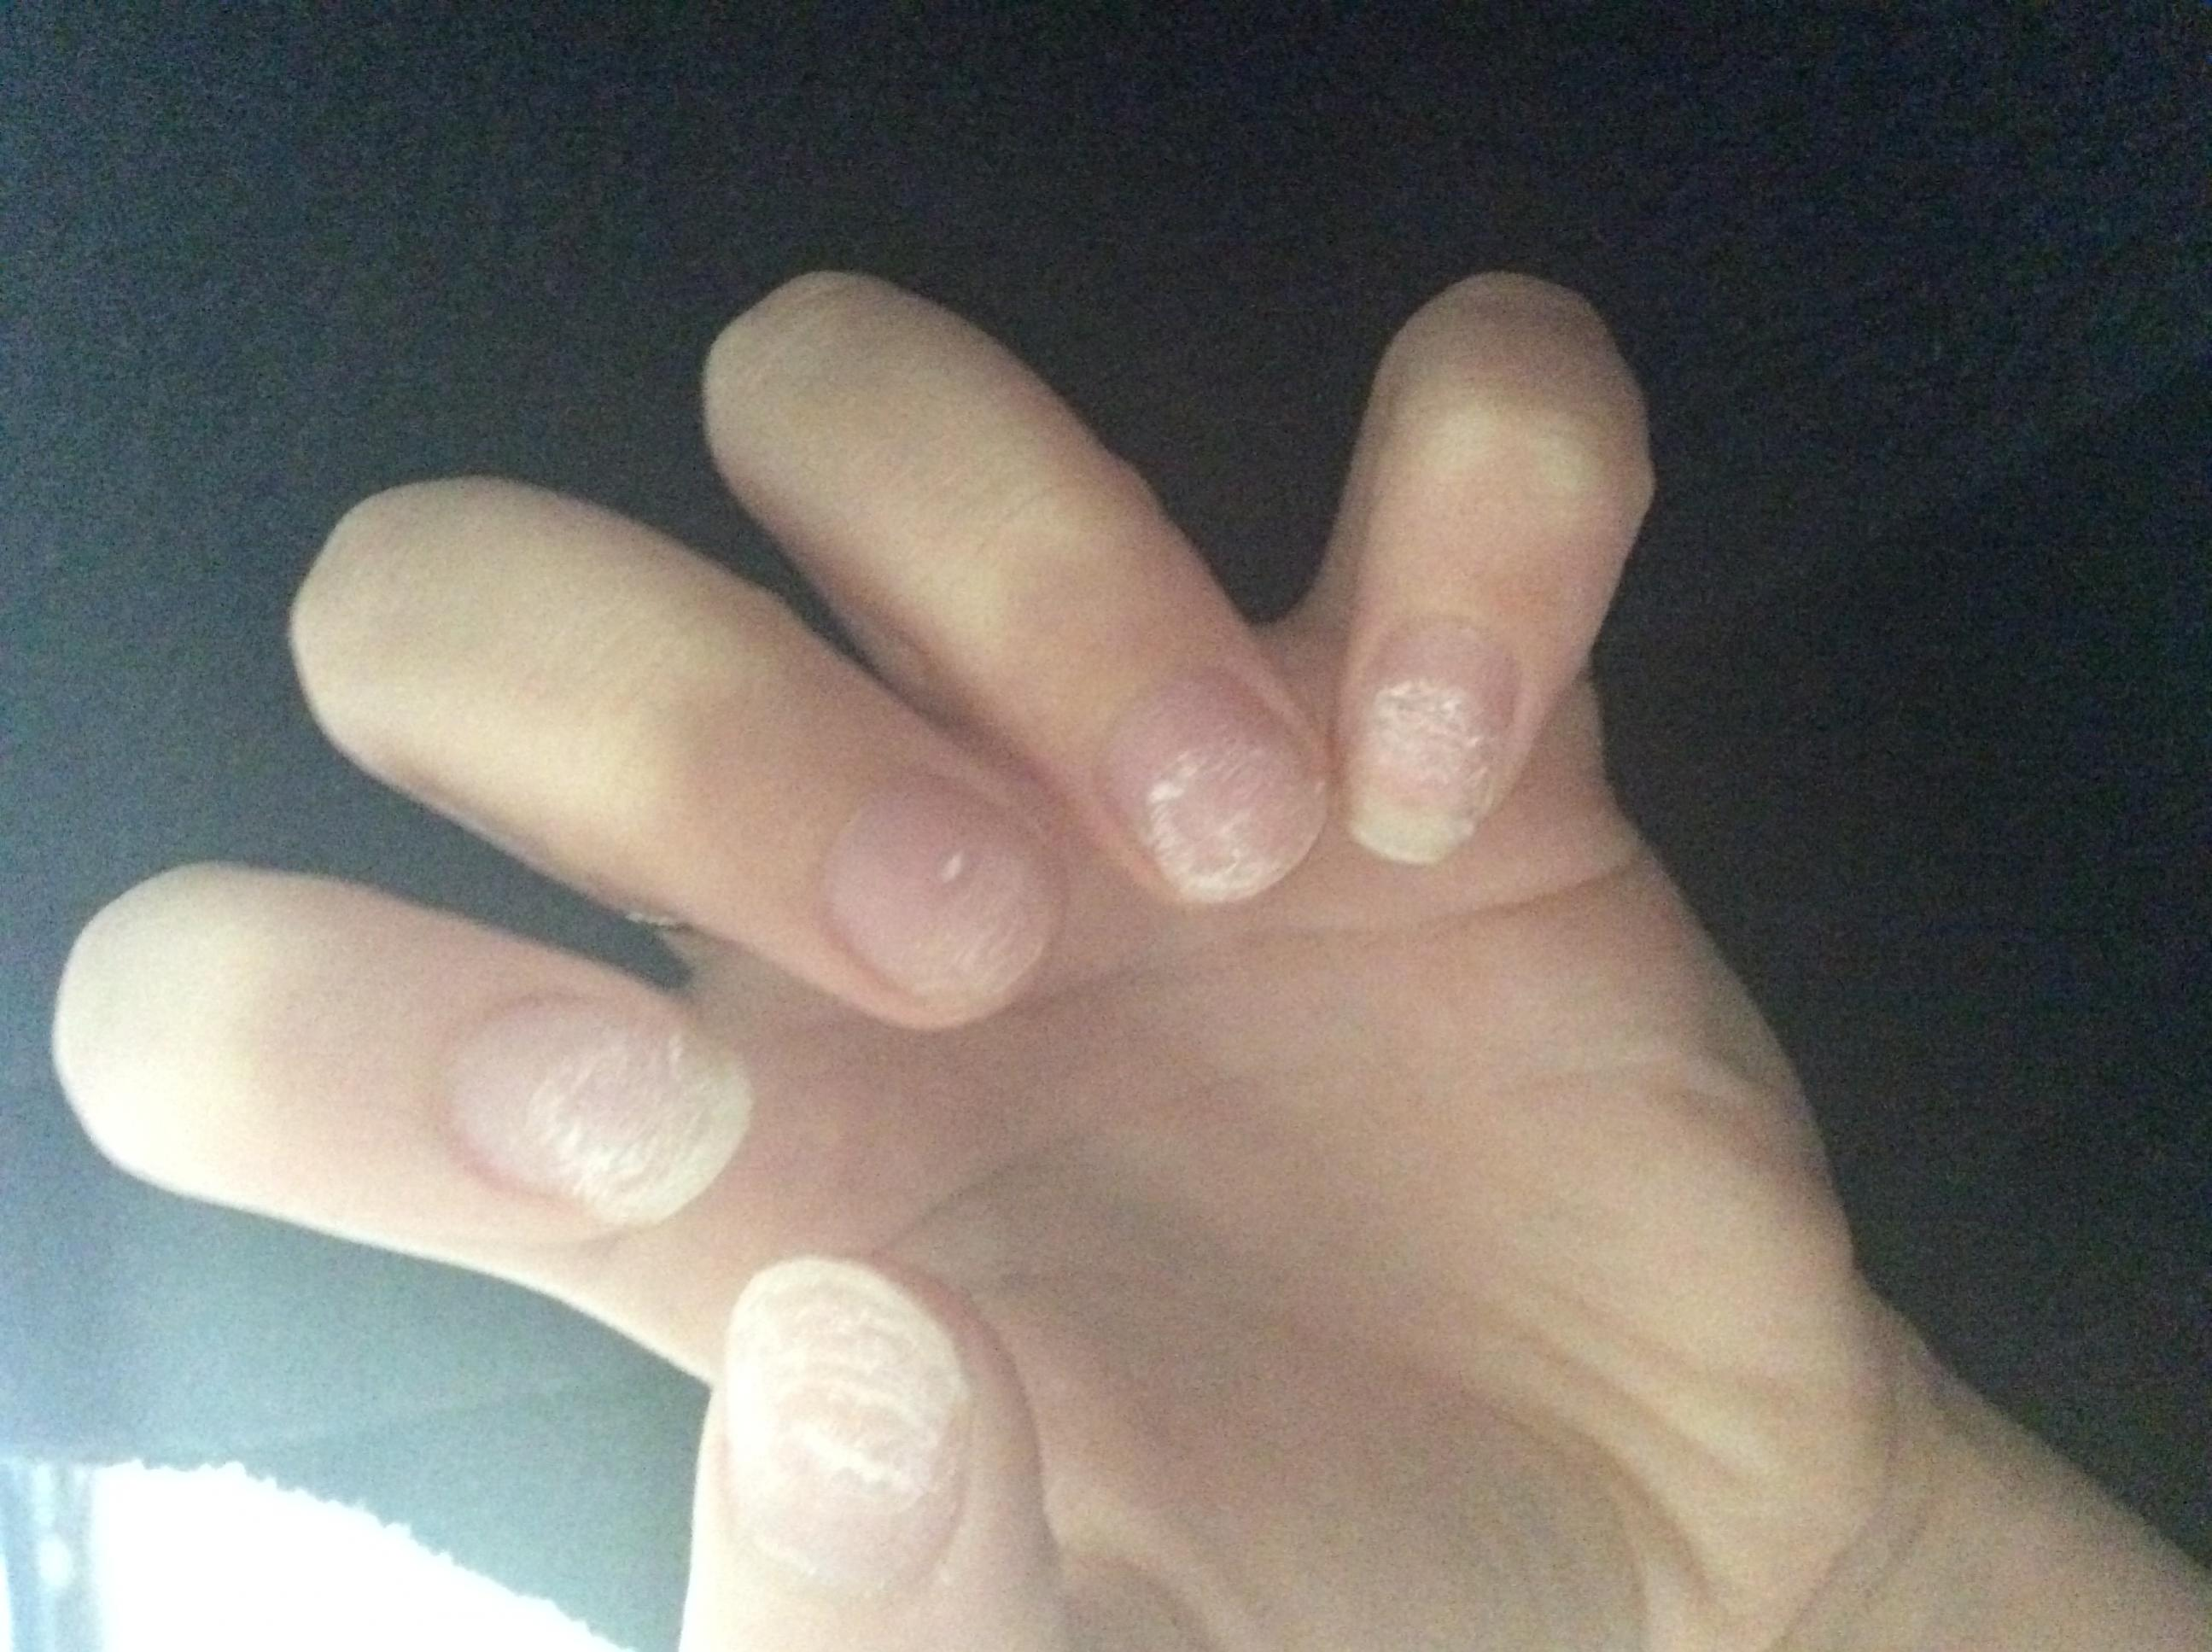 My nails are ruined after acrylics.. HELP!! - The Student Room